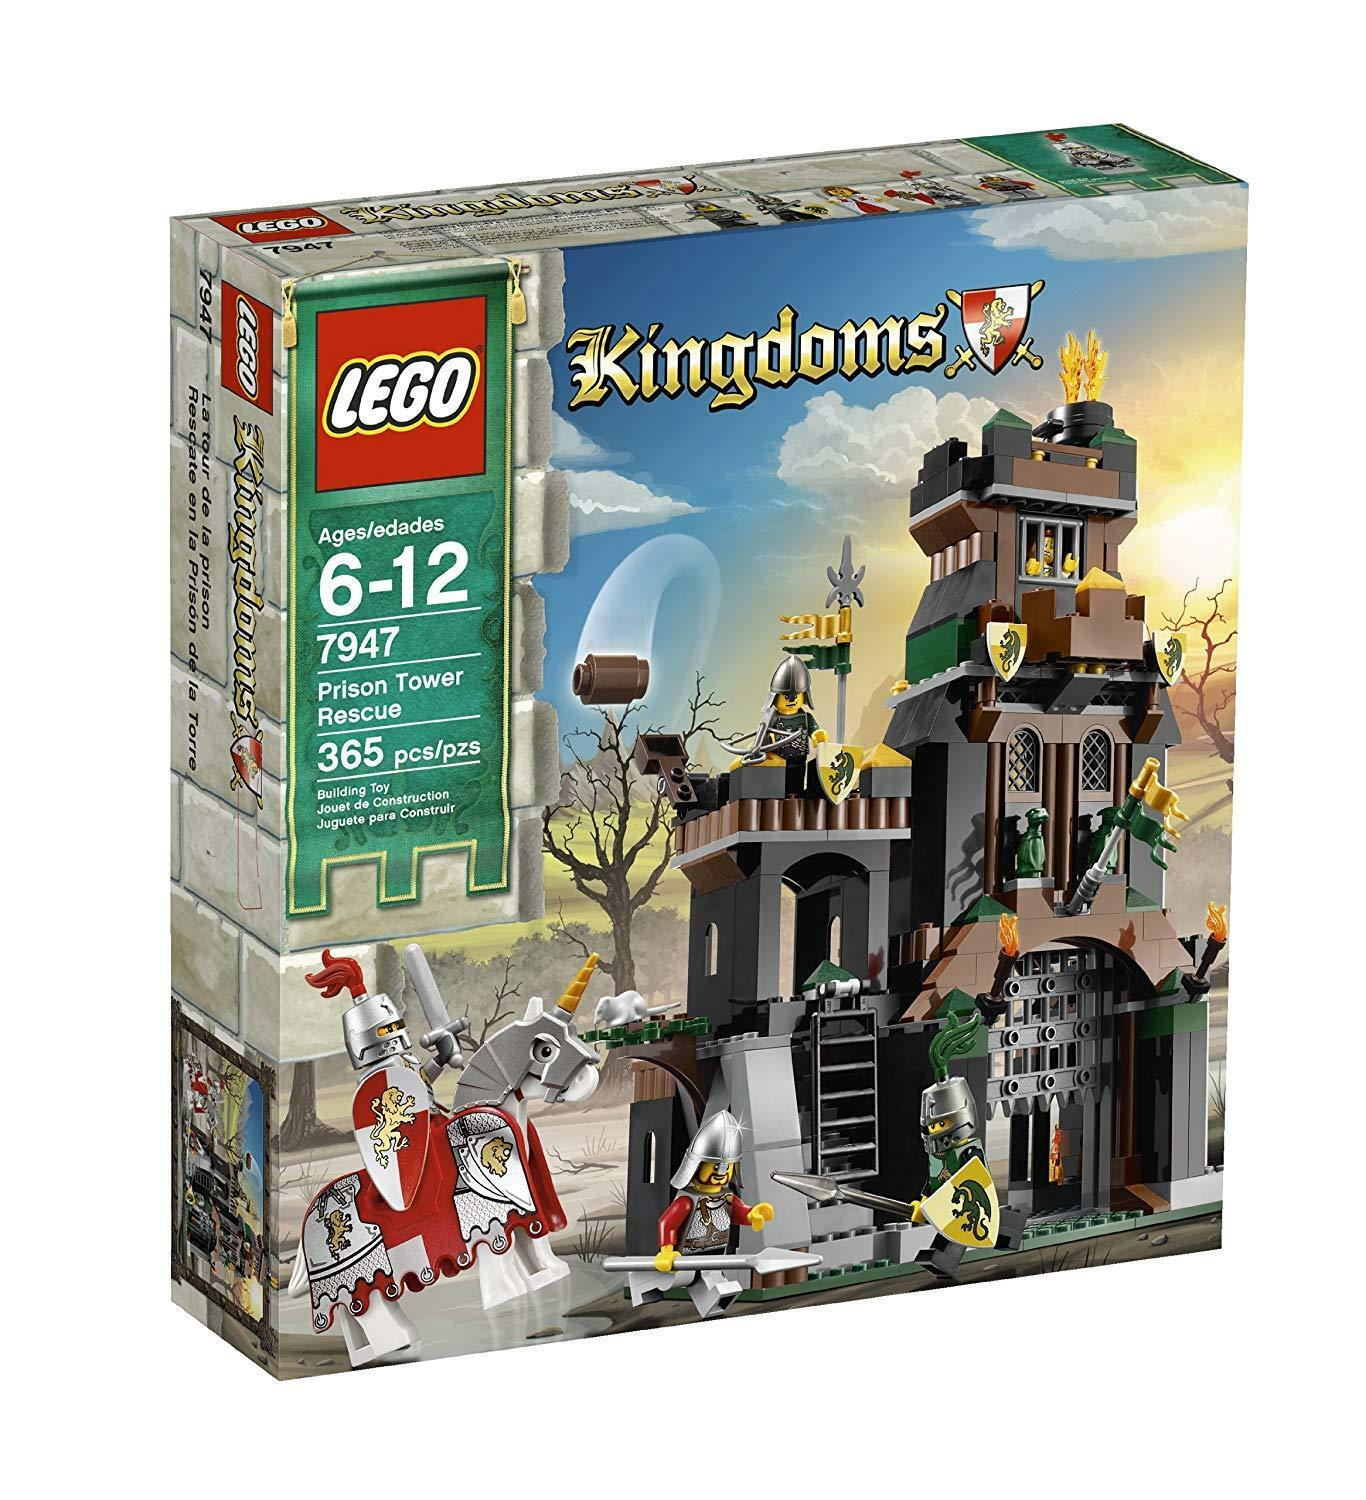 Lego Kingdoms Prison Tower Rescue 7947  retired